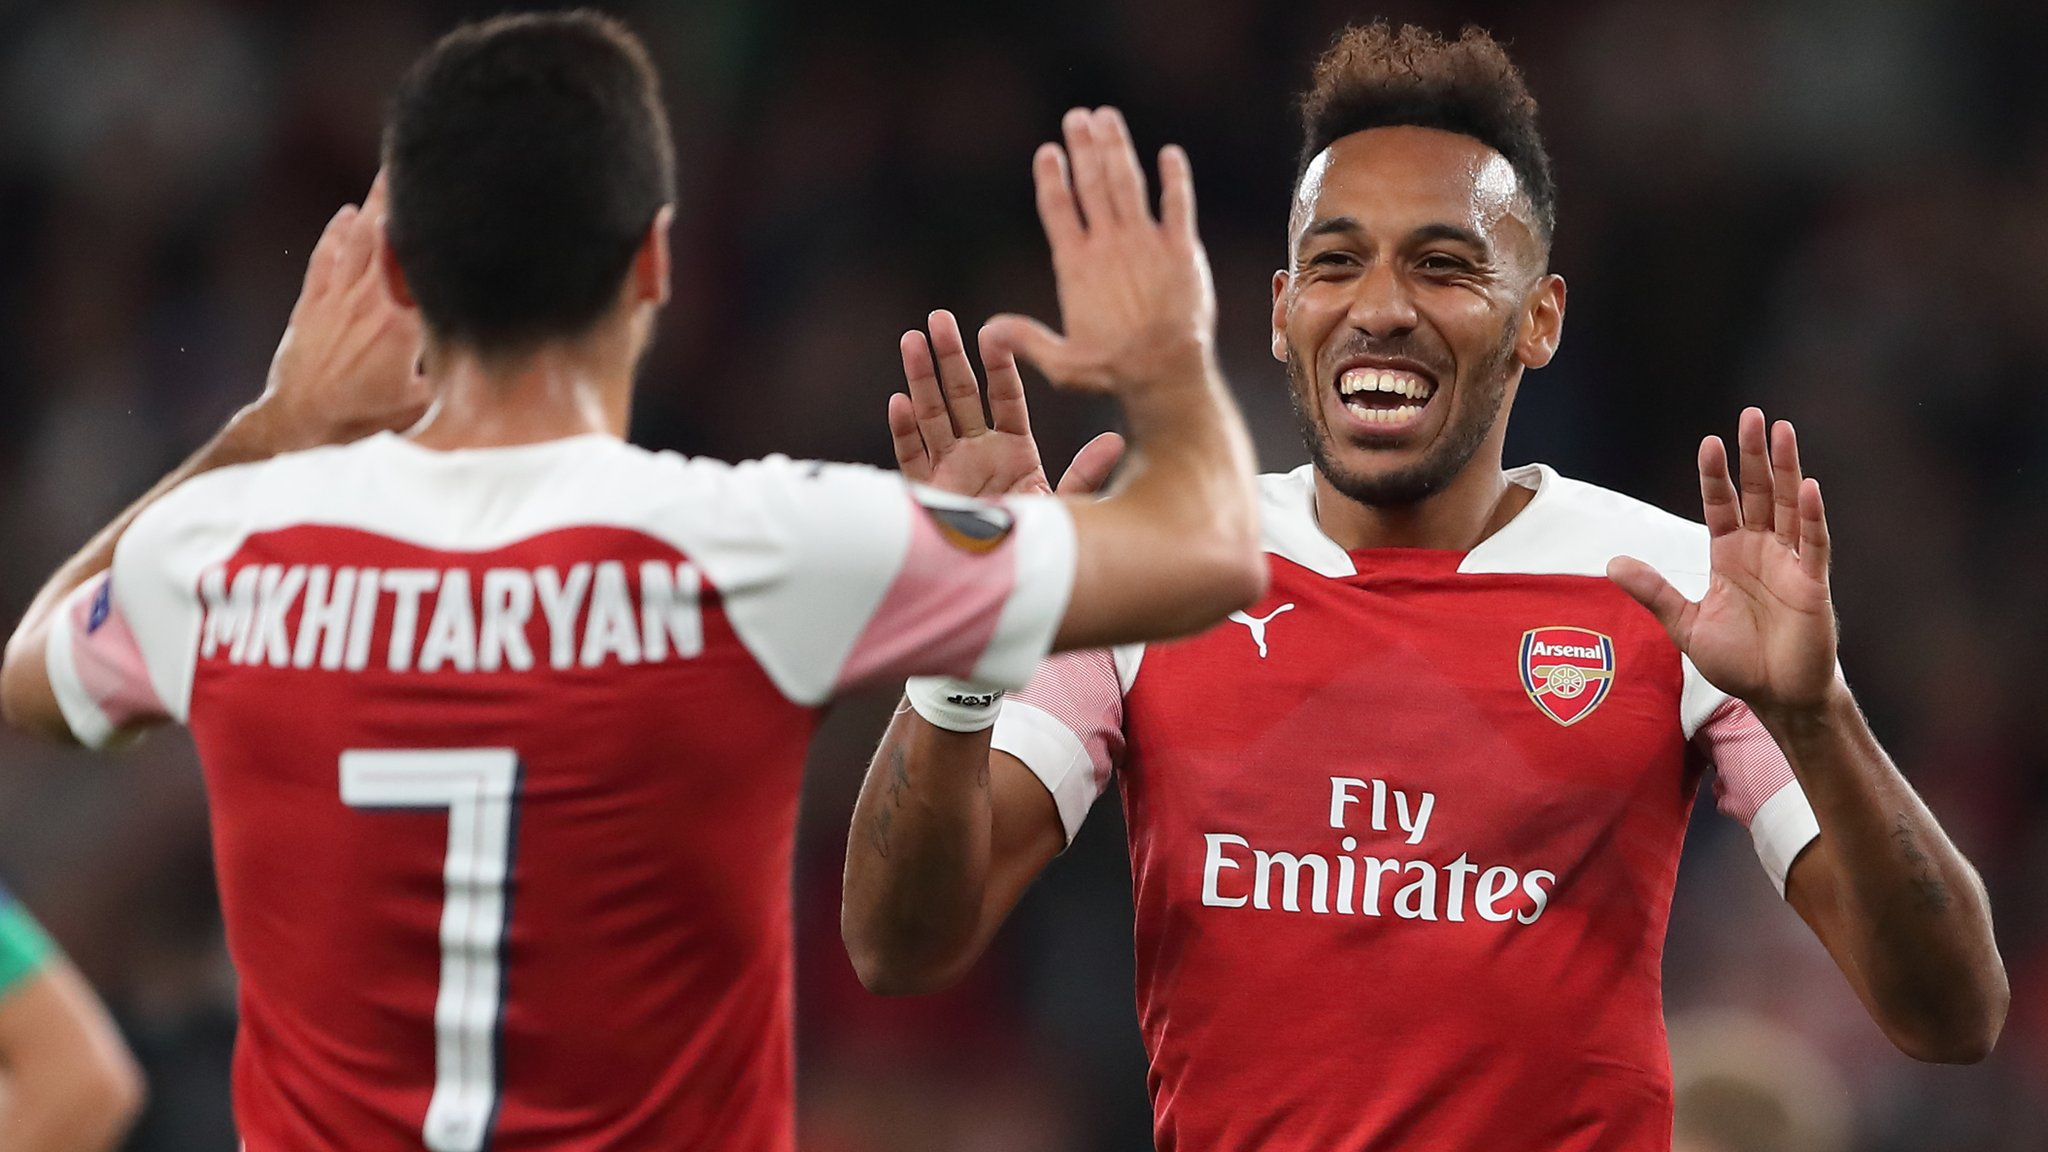 Arsenal must 'improve a lot of things' to catch leaders - Emery